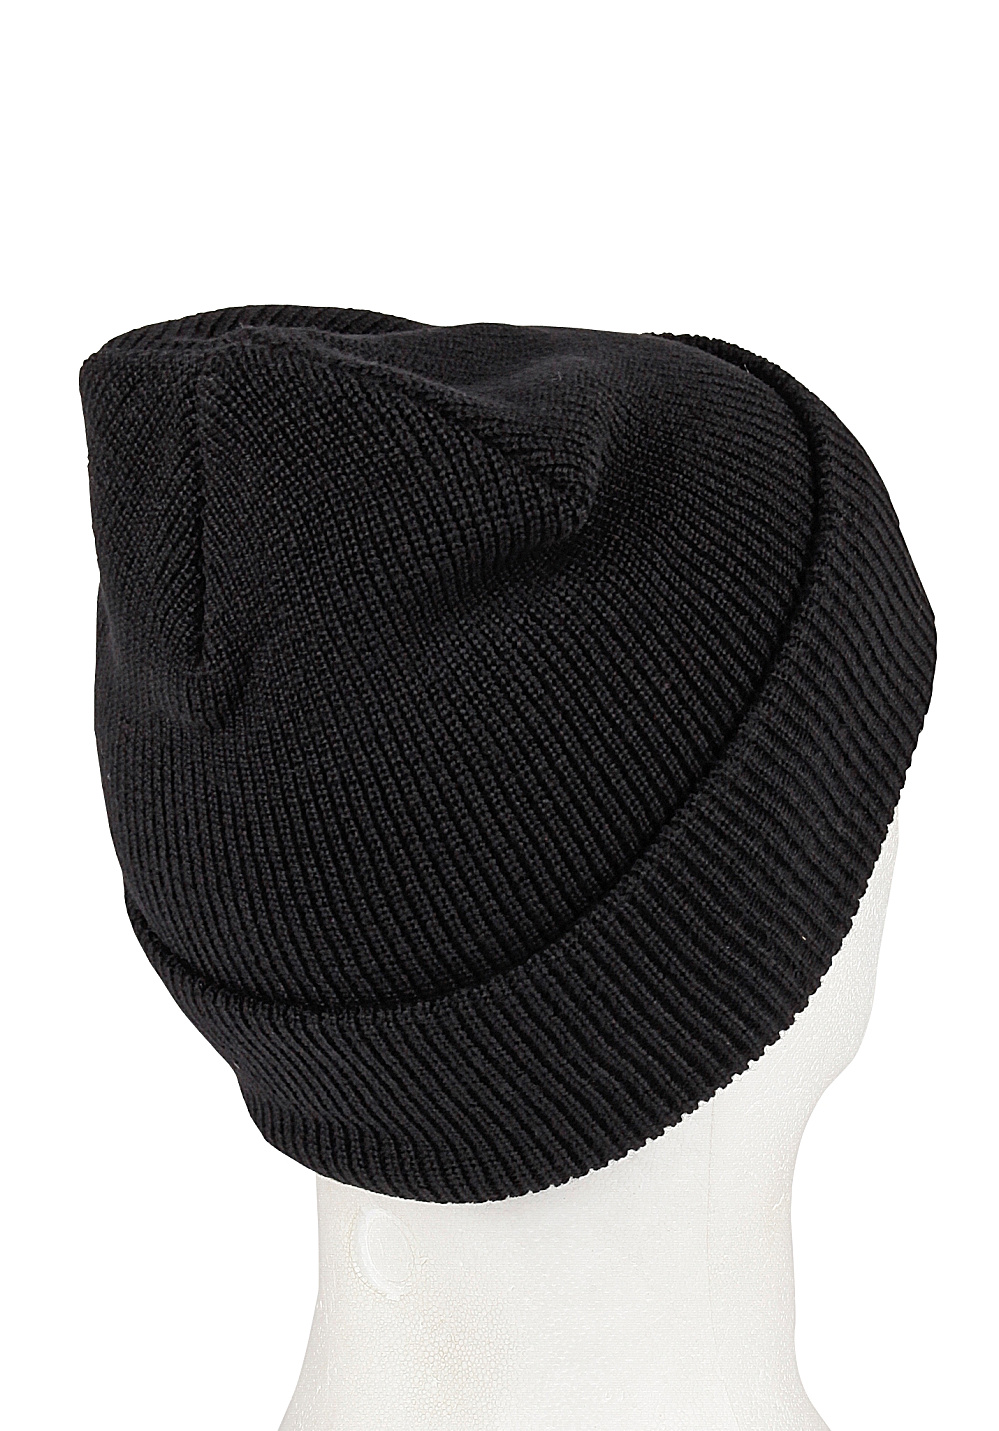 Home · CANADA GOOSE Merino Wool Watch Cap - Cap for Men - Black. Back to  Overview. 1  2. Previous 775330fdb153